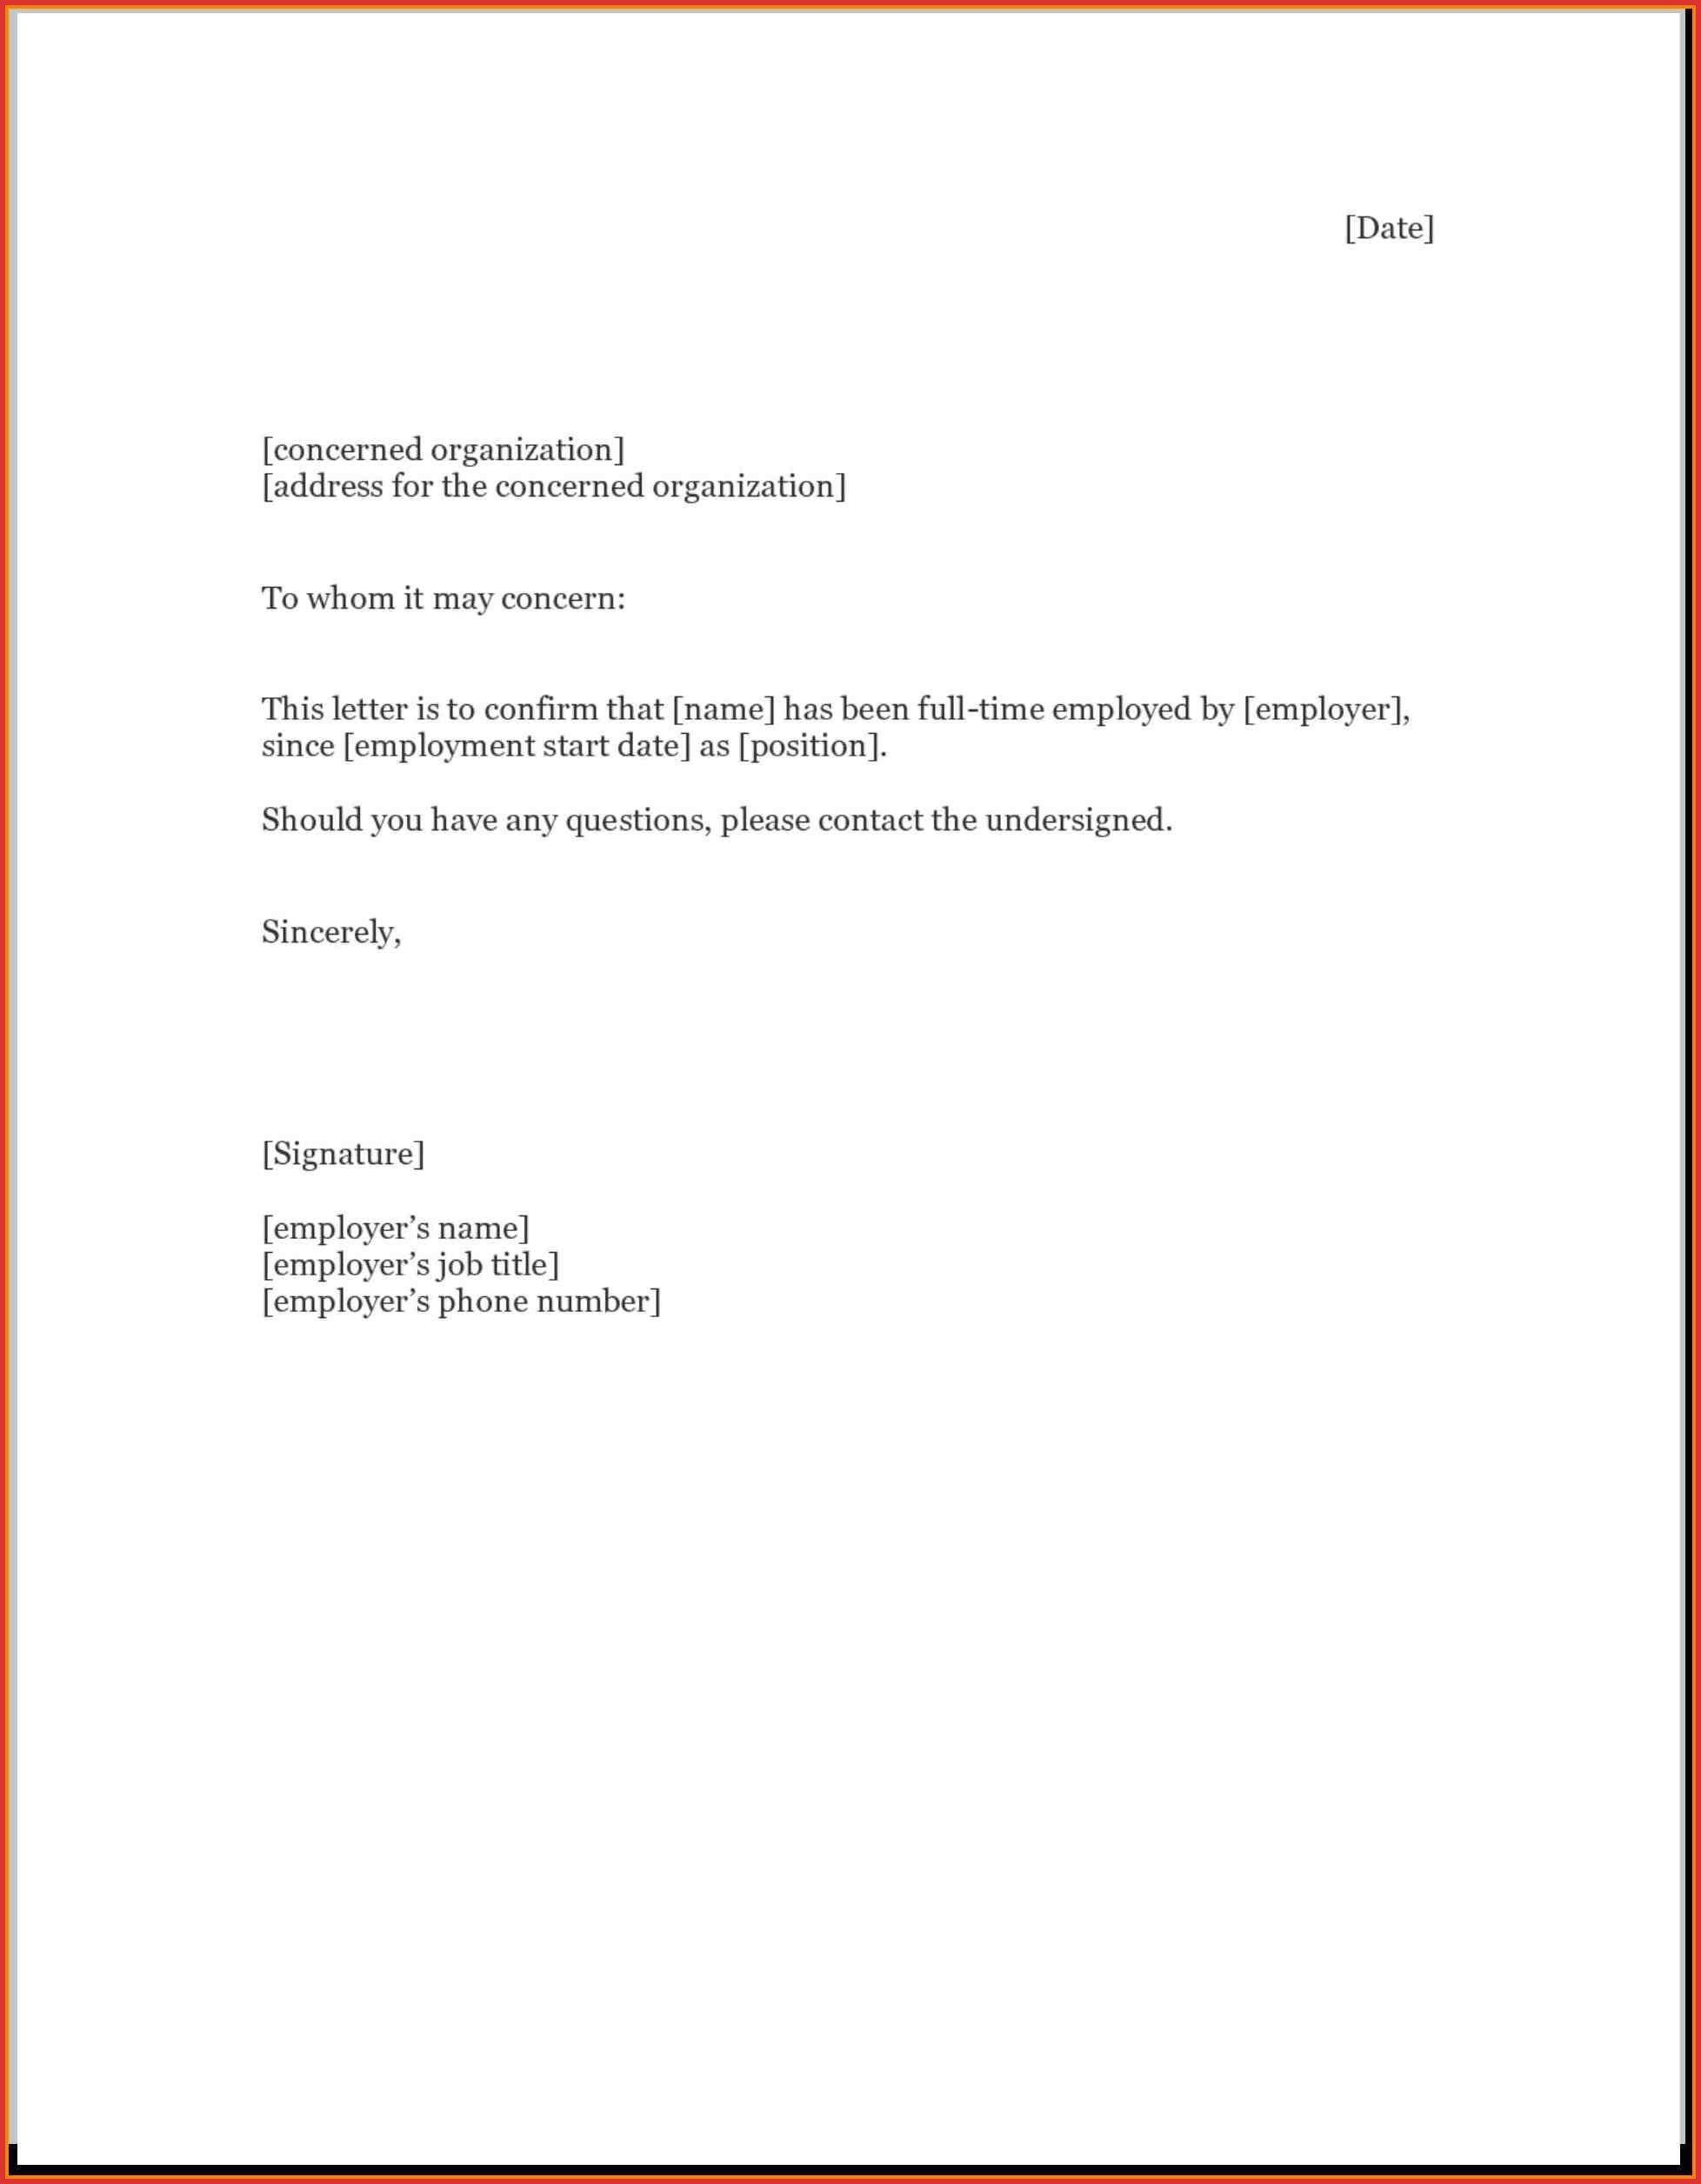 Employment Confirmation Letter Template Employment Verification Letter To Whom It May Concern Letter Of Employment Employment Letter Sample Lettering